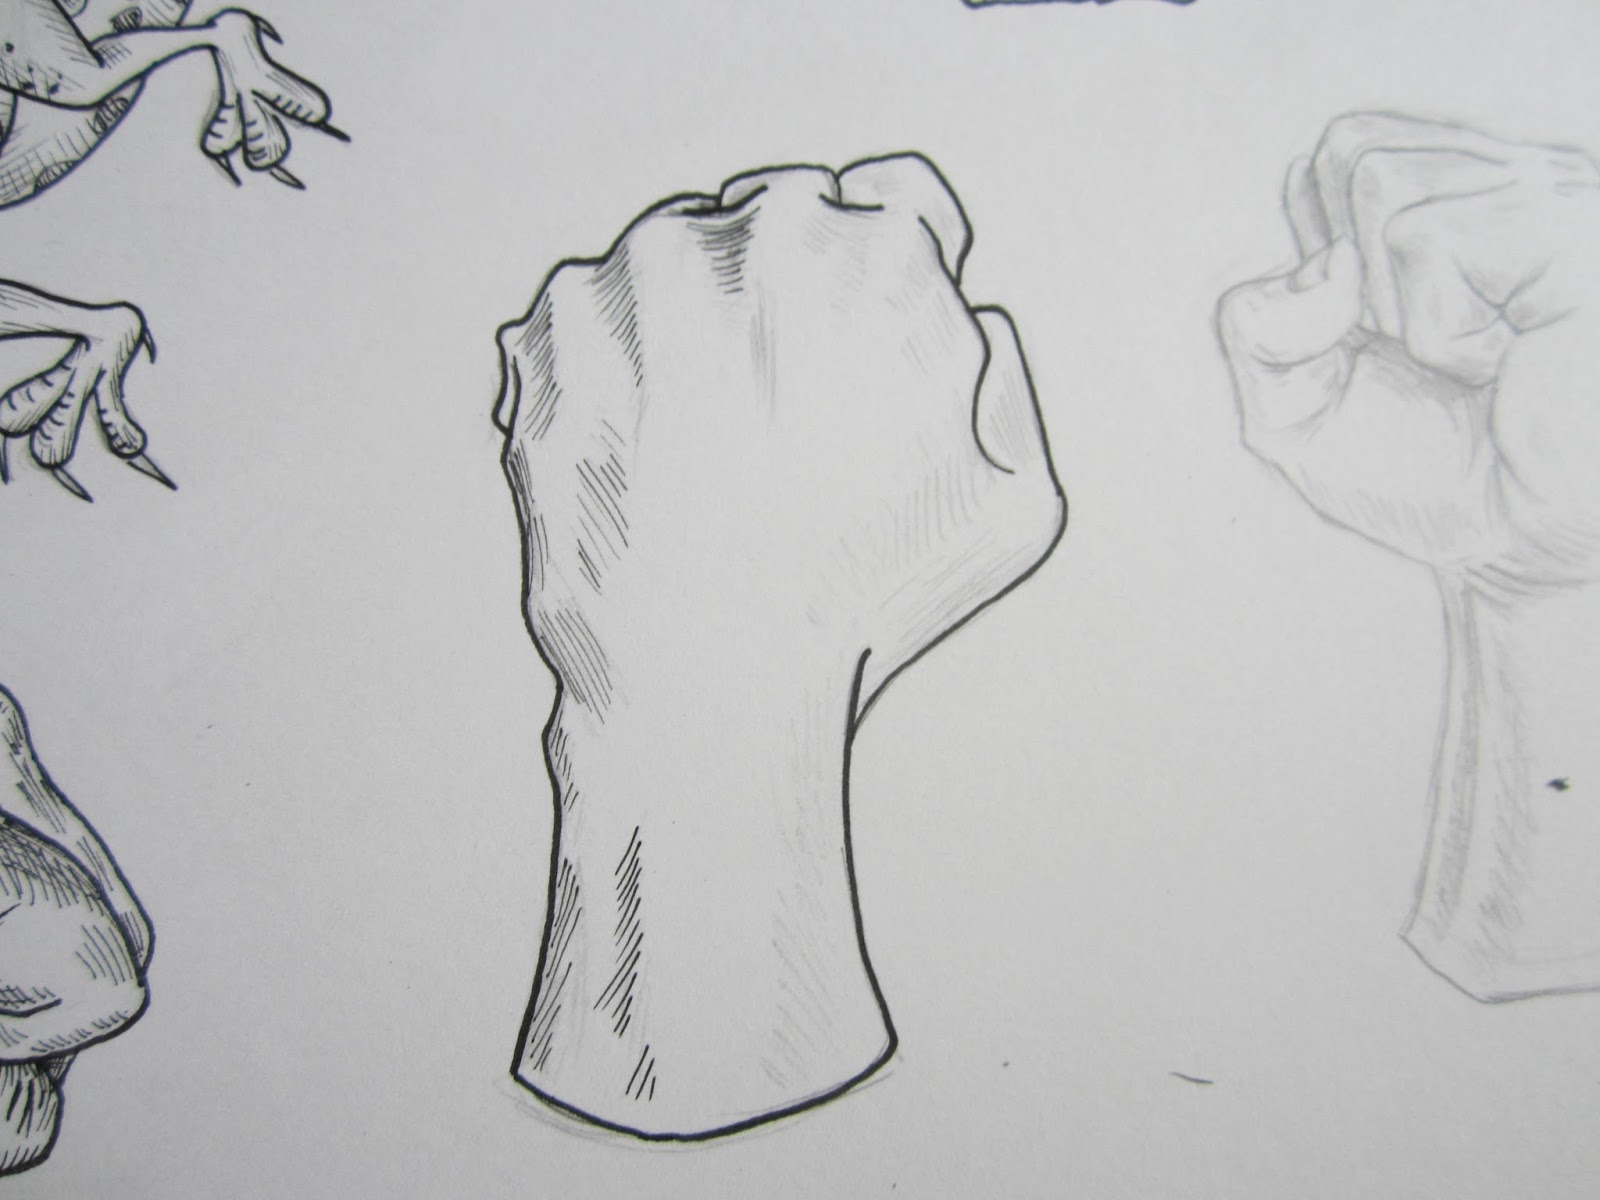 How to draw fist